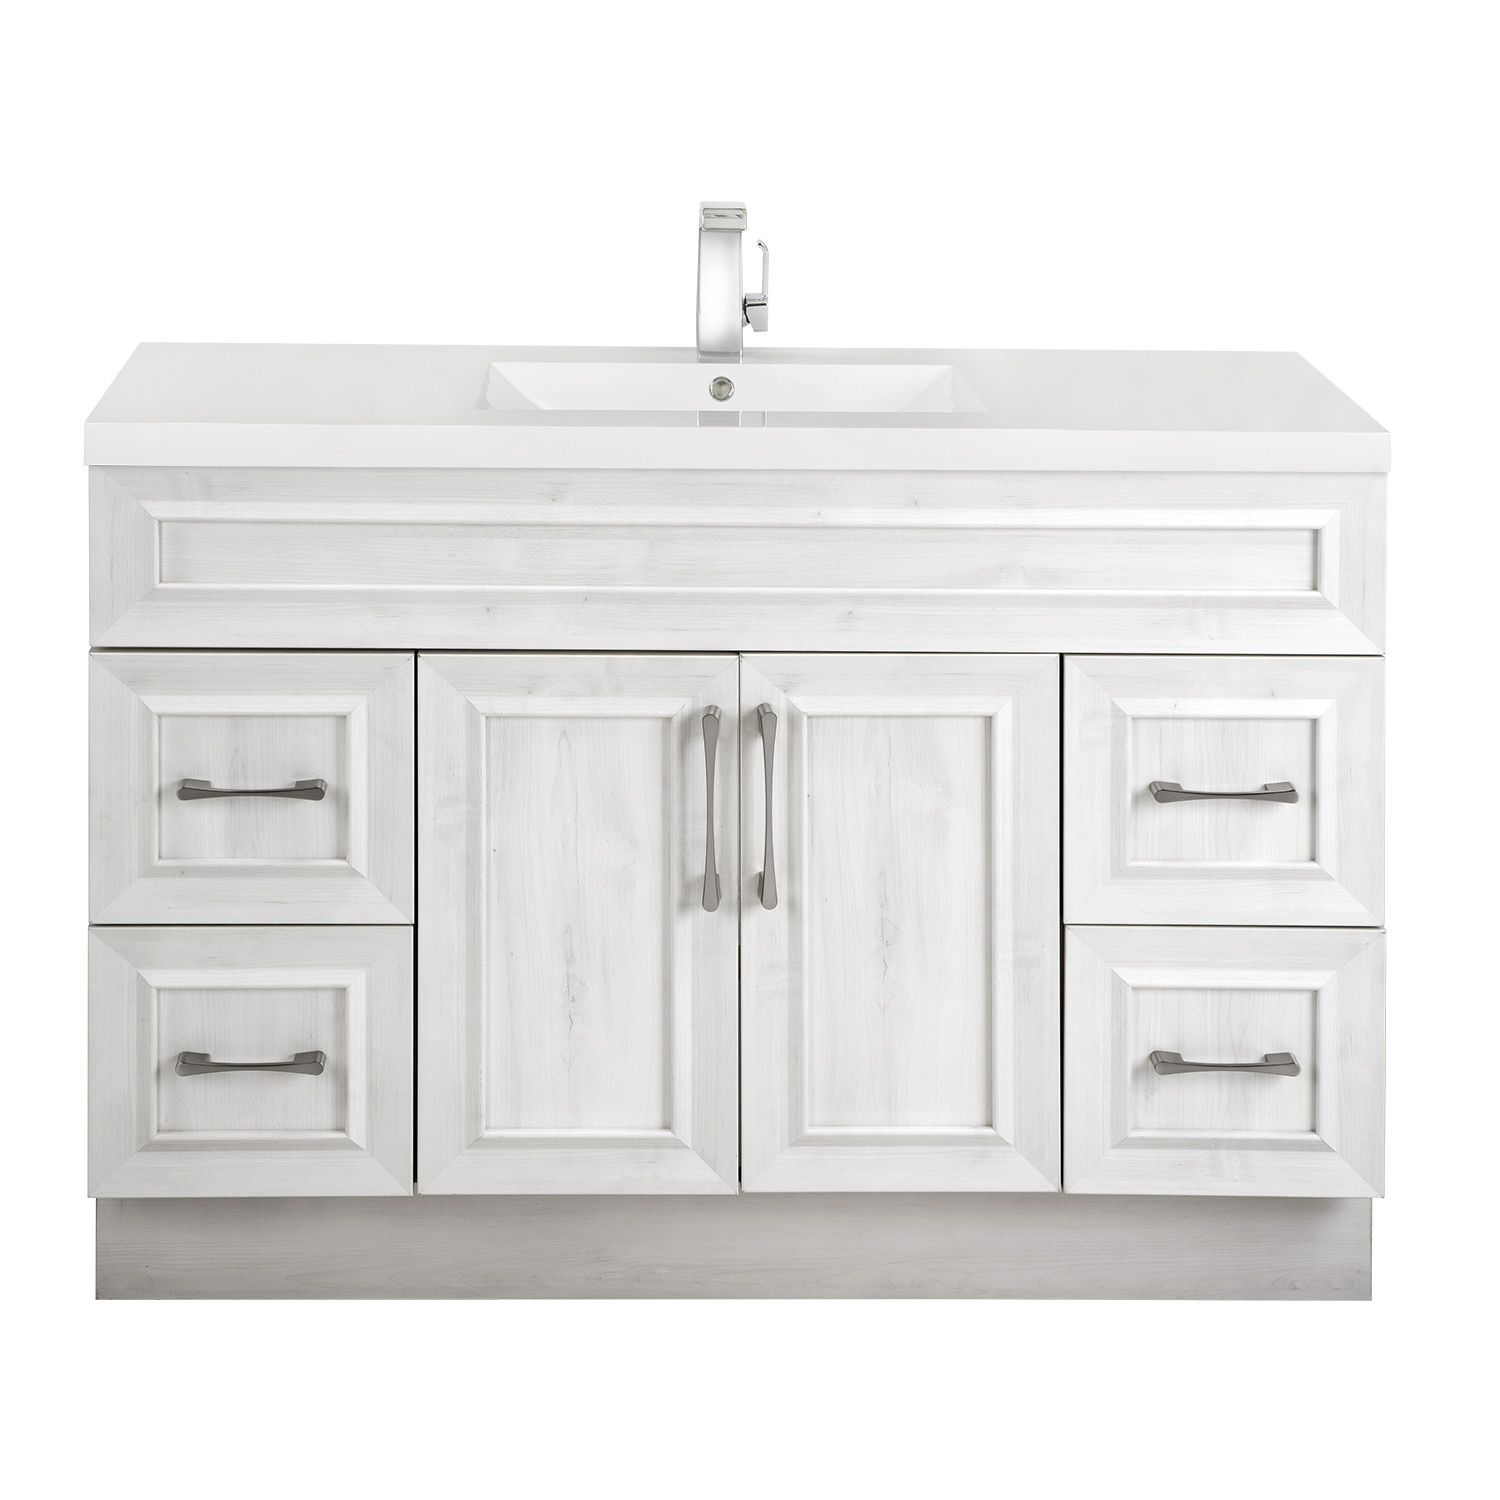 picture u bath cutler sangallo files kitchen ideas vanitys and furniture trends fascinating for bathroom